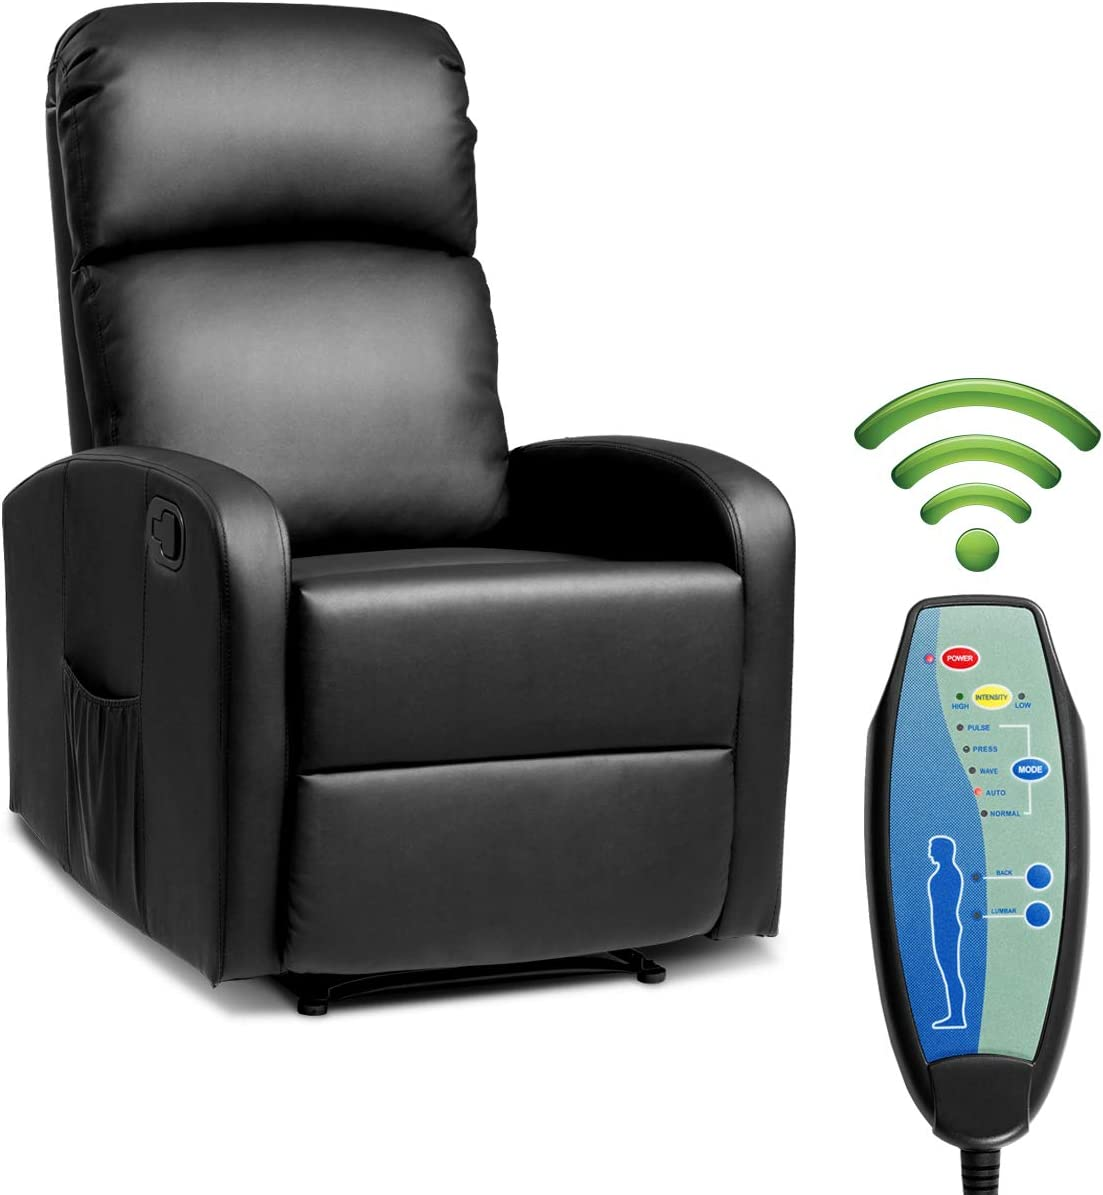 Giantex Massage Recliner Chair w Remote Control, 5 Vibration Modes, Adjustable Footrest Design, PU Leather Padded Seat, Modern Ergonomic Lounge Chaise for Living Room Office Black